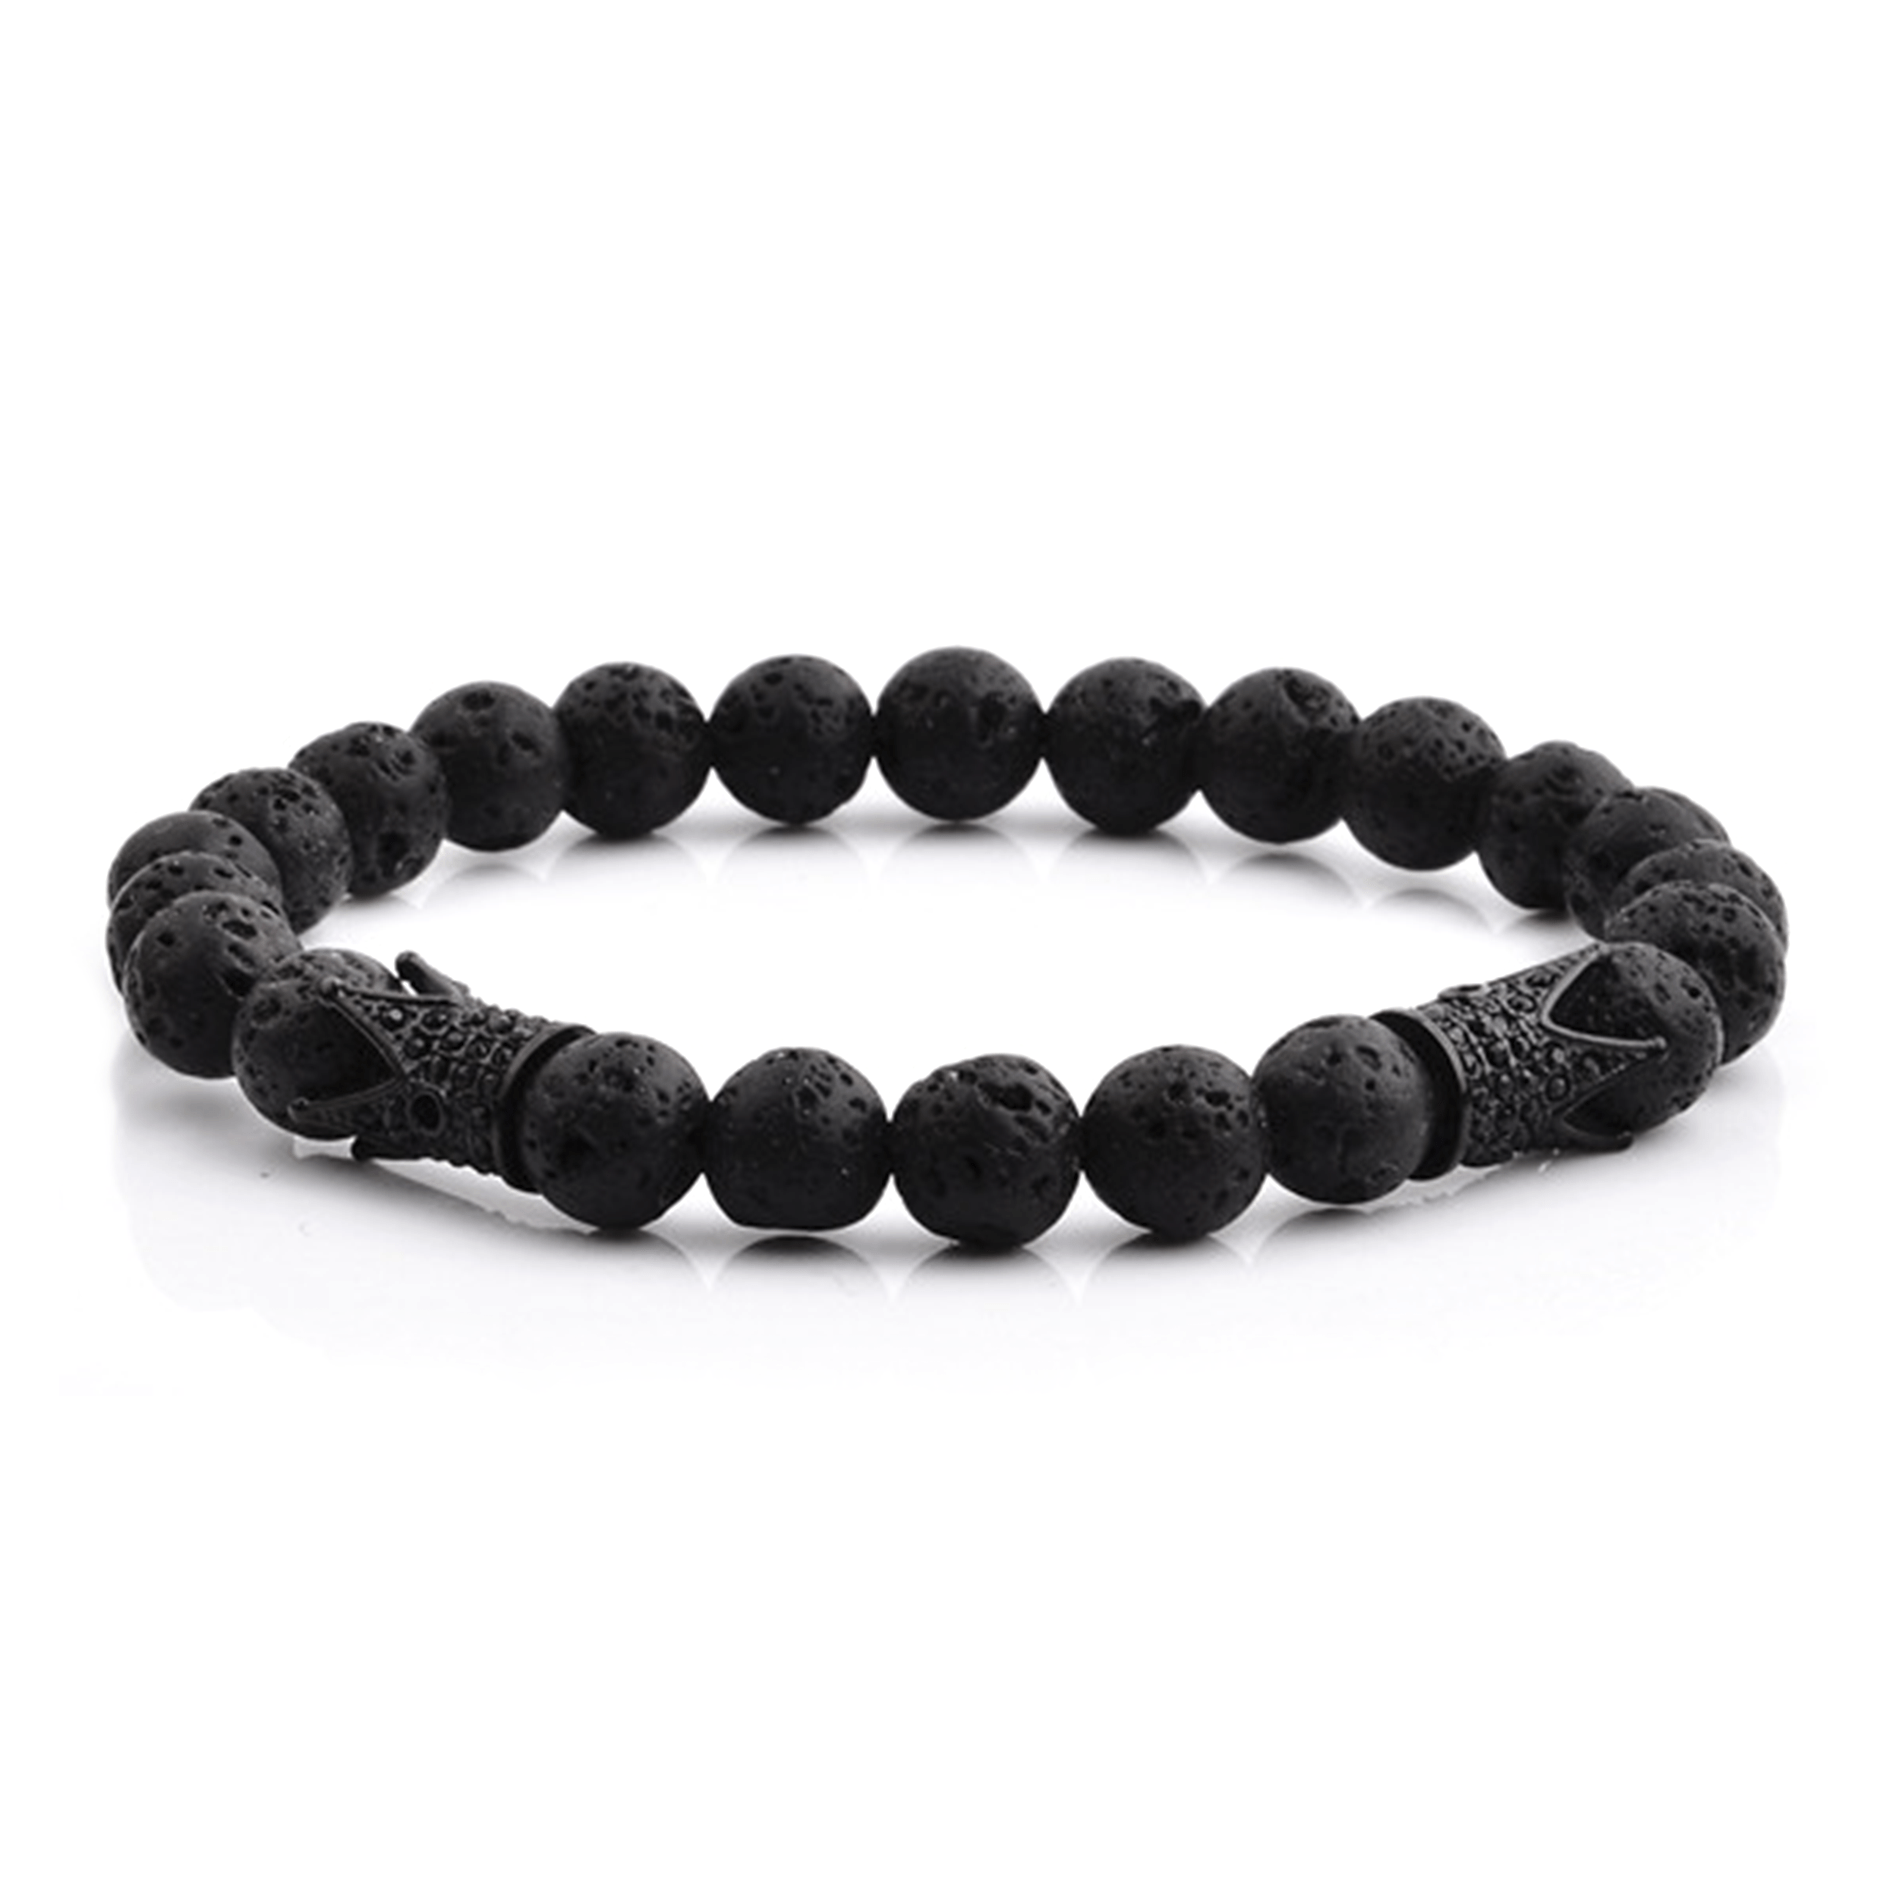 HYLIZO X Series 070 - Volcano Beaded bracelet with 2x 316 Stainless Steel Luxury Black Edition Crowns with black stones